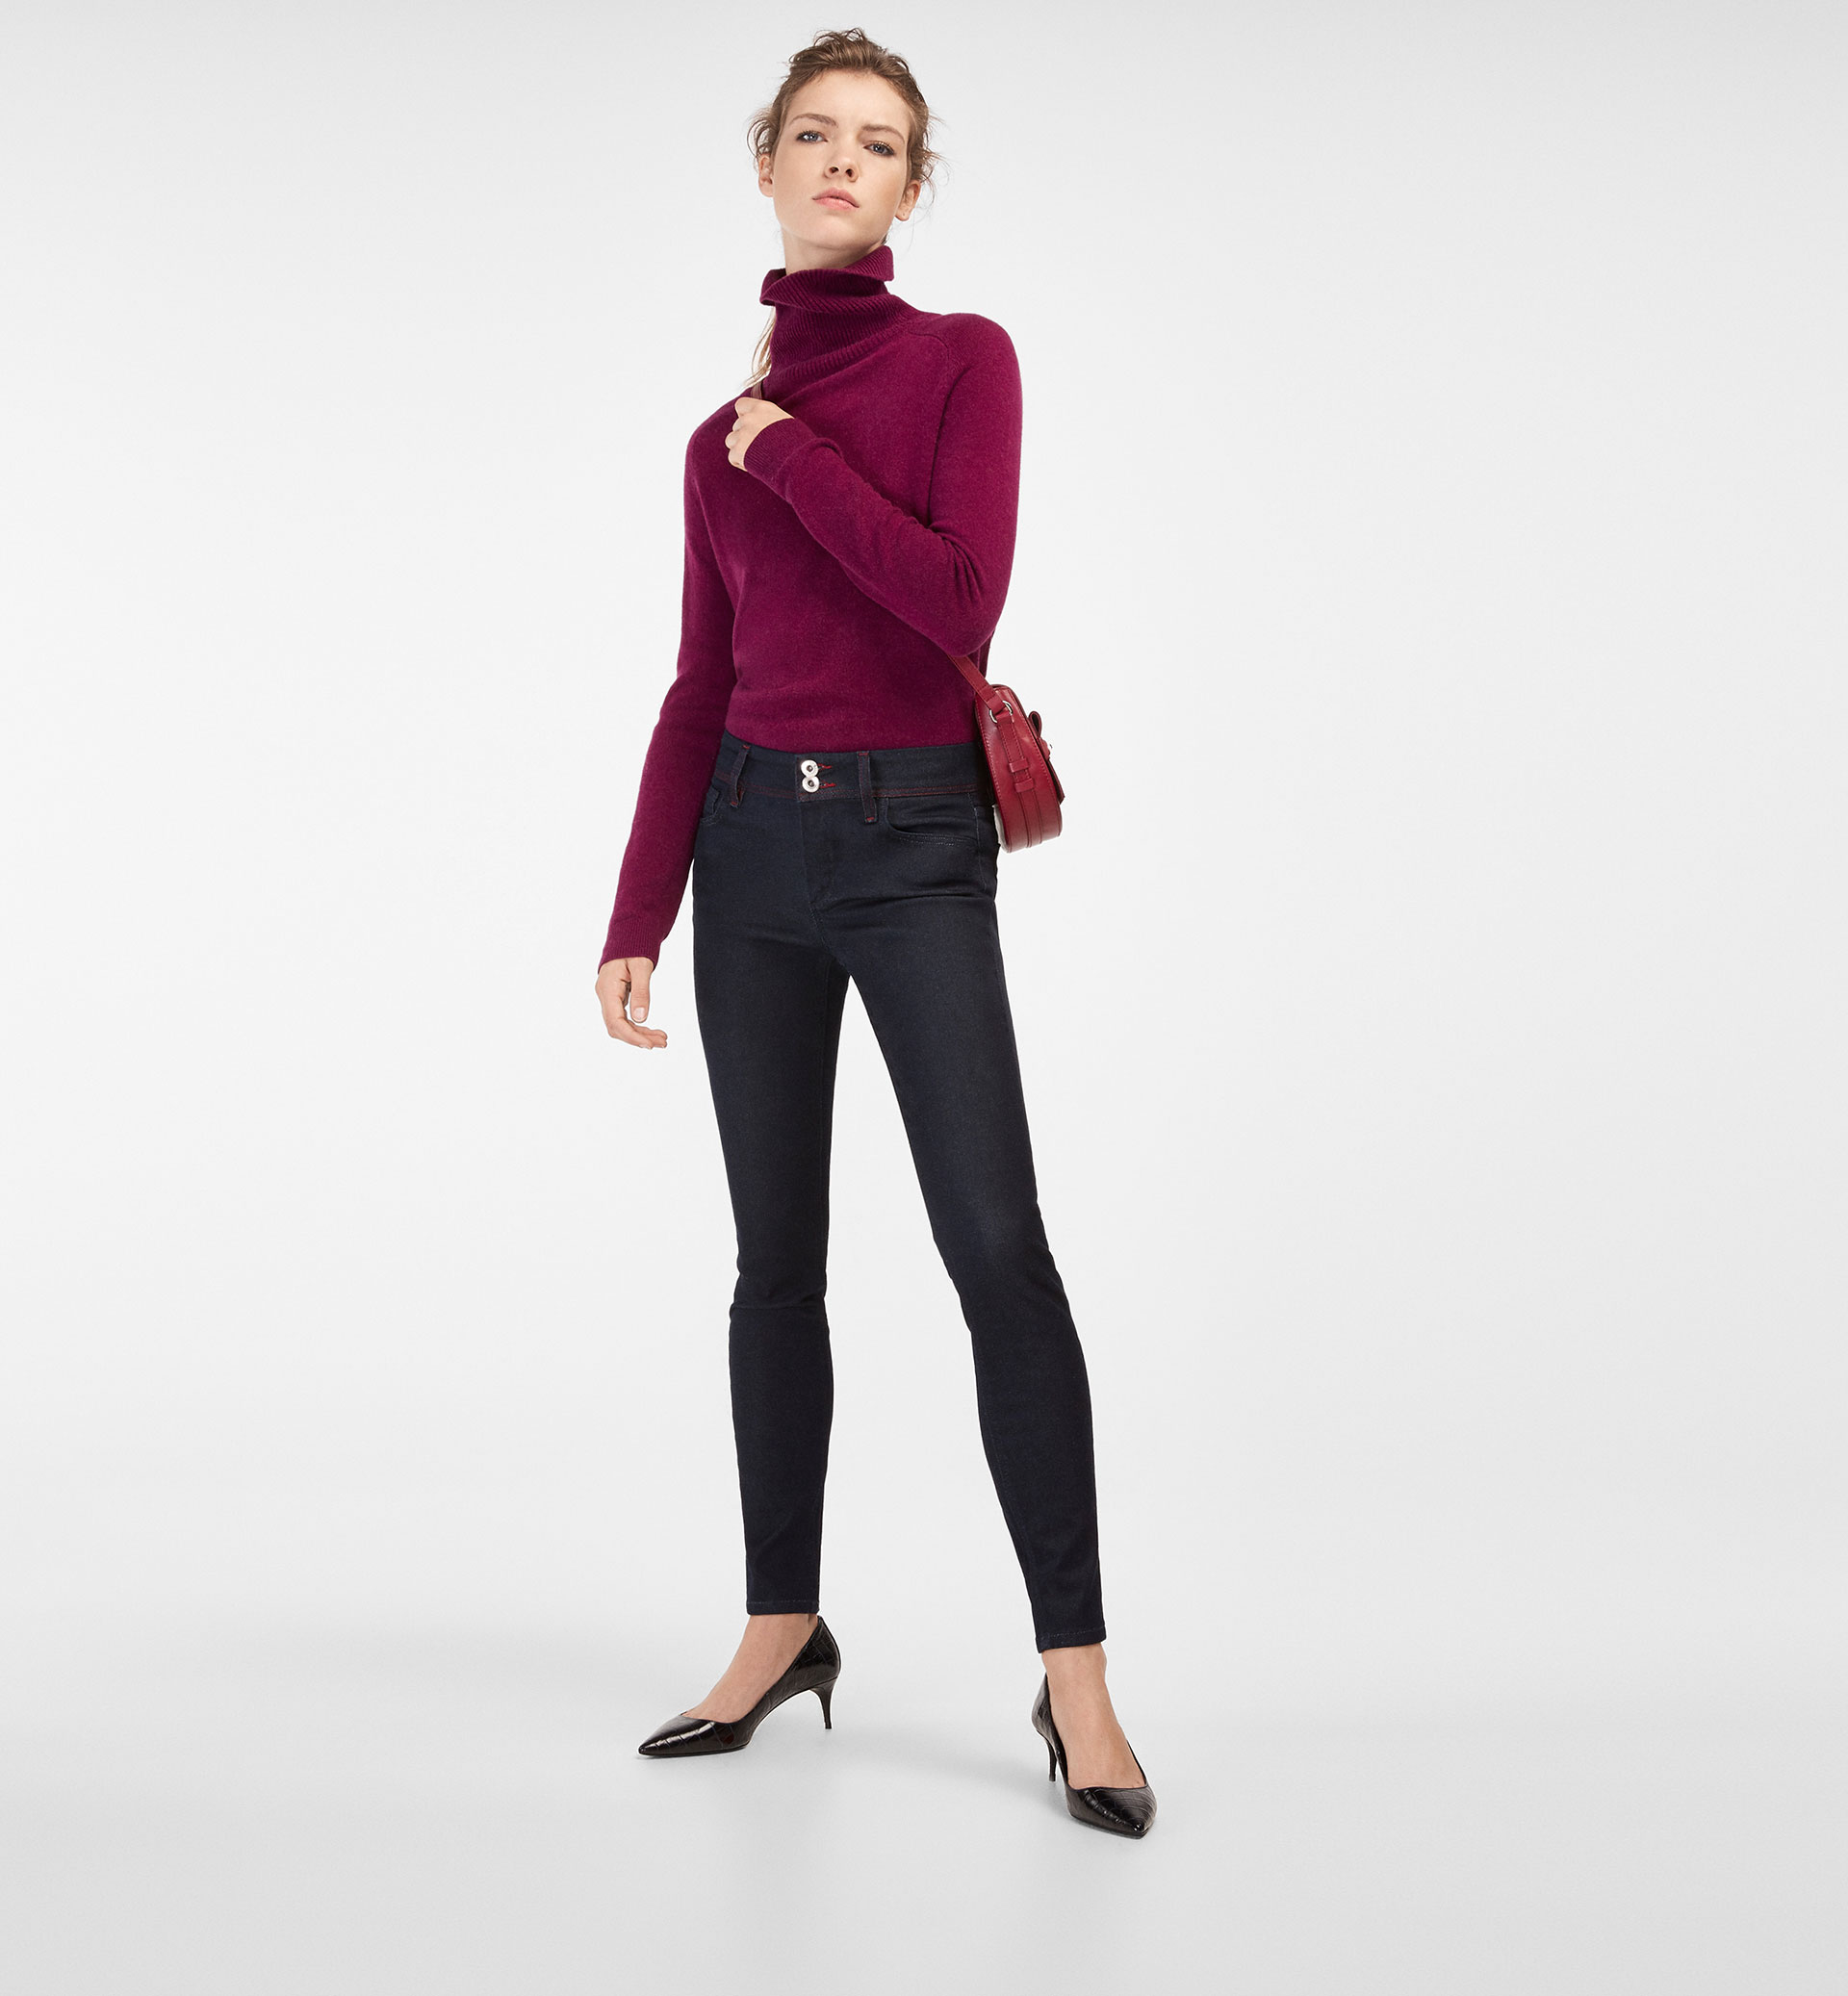 SKINNY FIT JEANS WITH TOPSTITCHING DETAIL